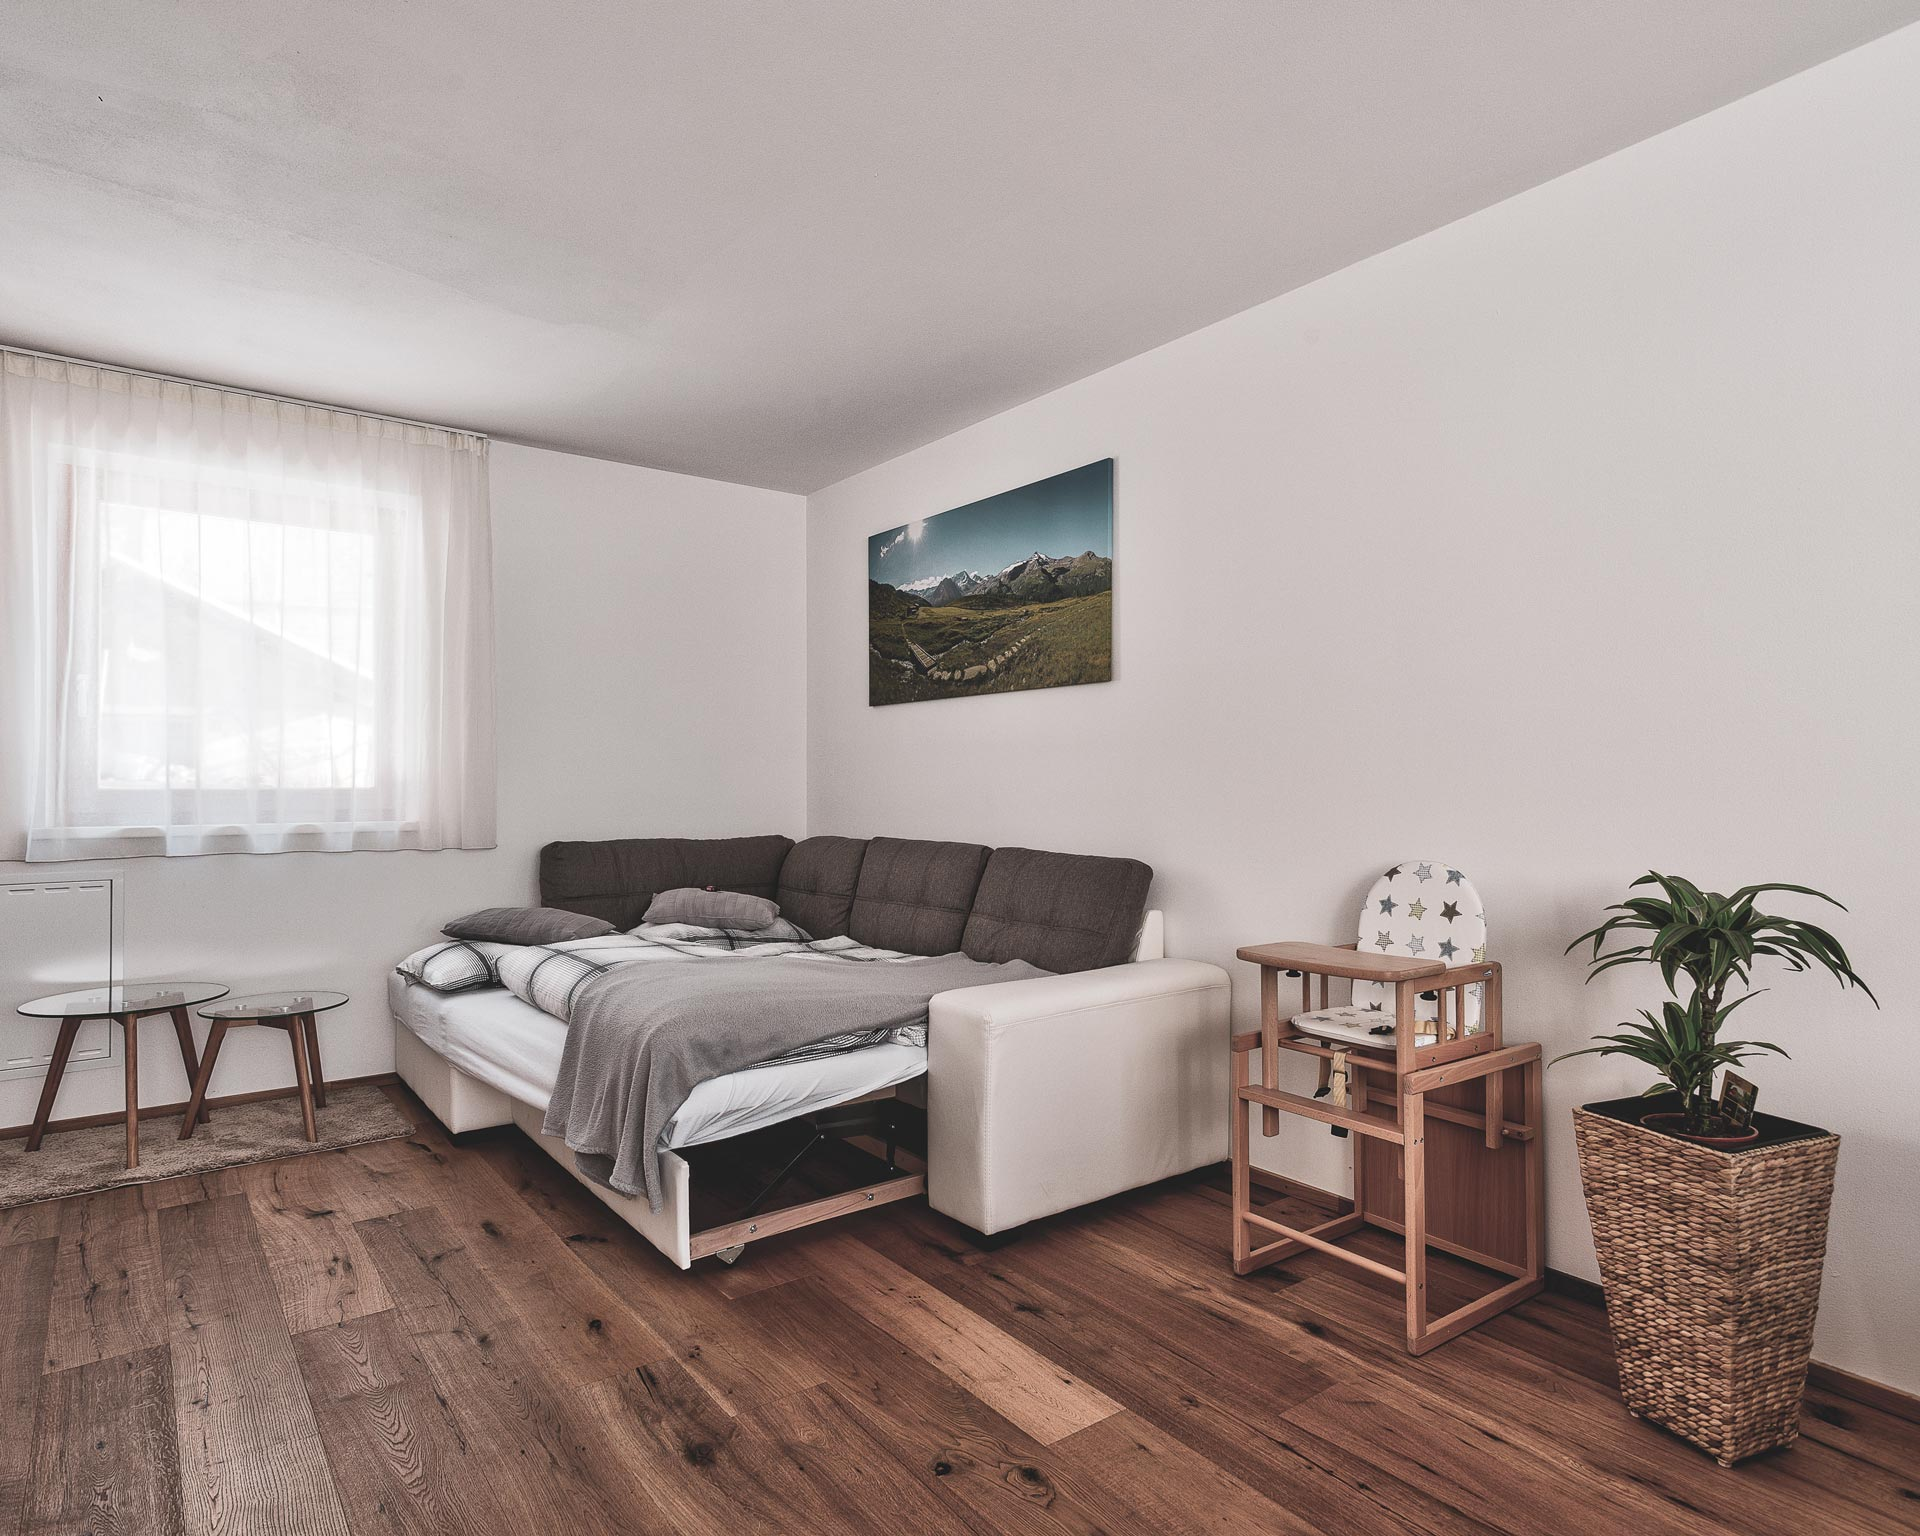 wohnkueche couch chalet waldblick 2 pfarrwirt appartements sand in taufers